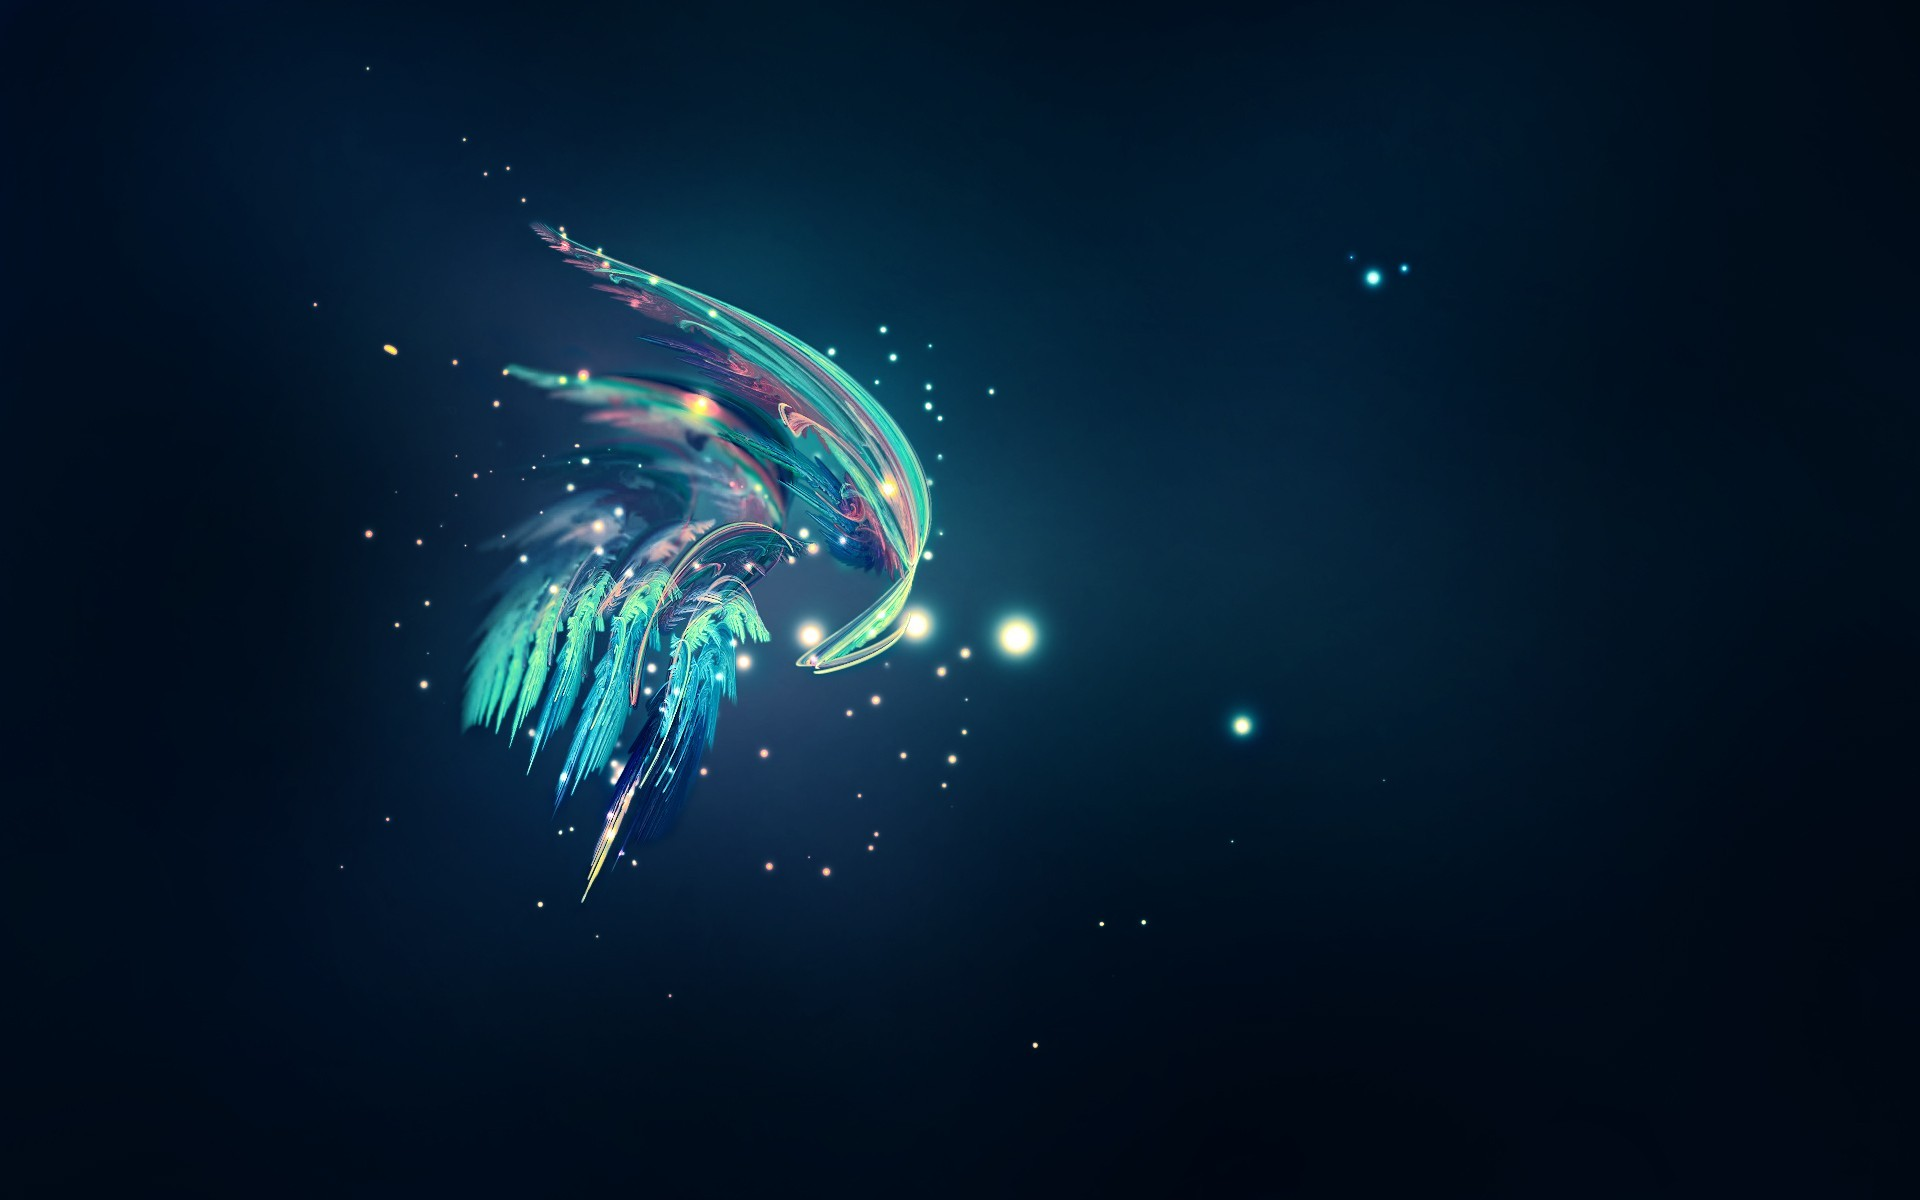 Feathers wallpaper 4458 1920x1200